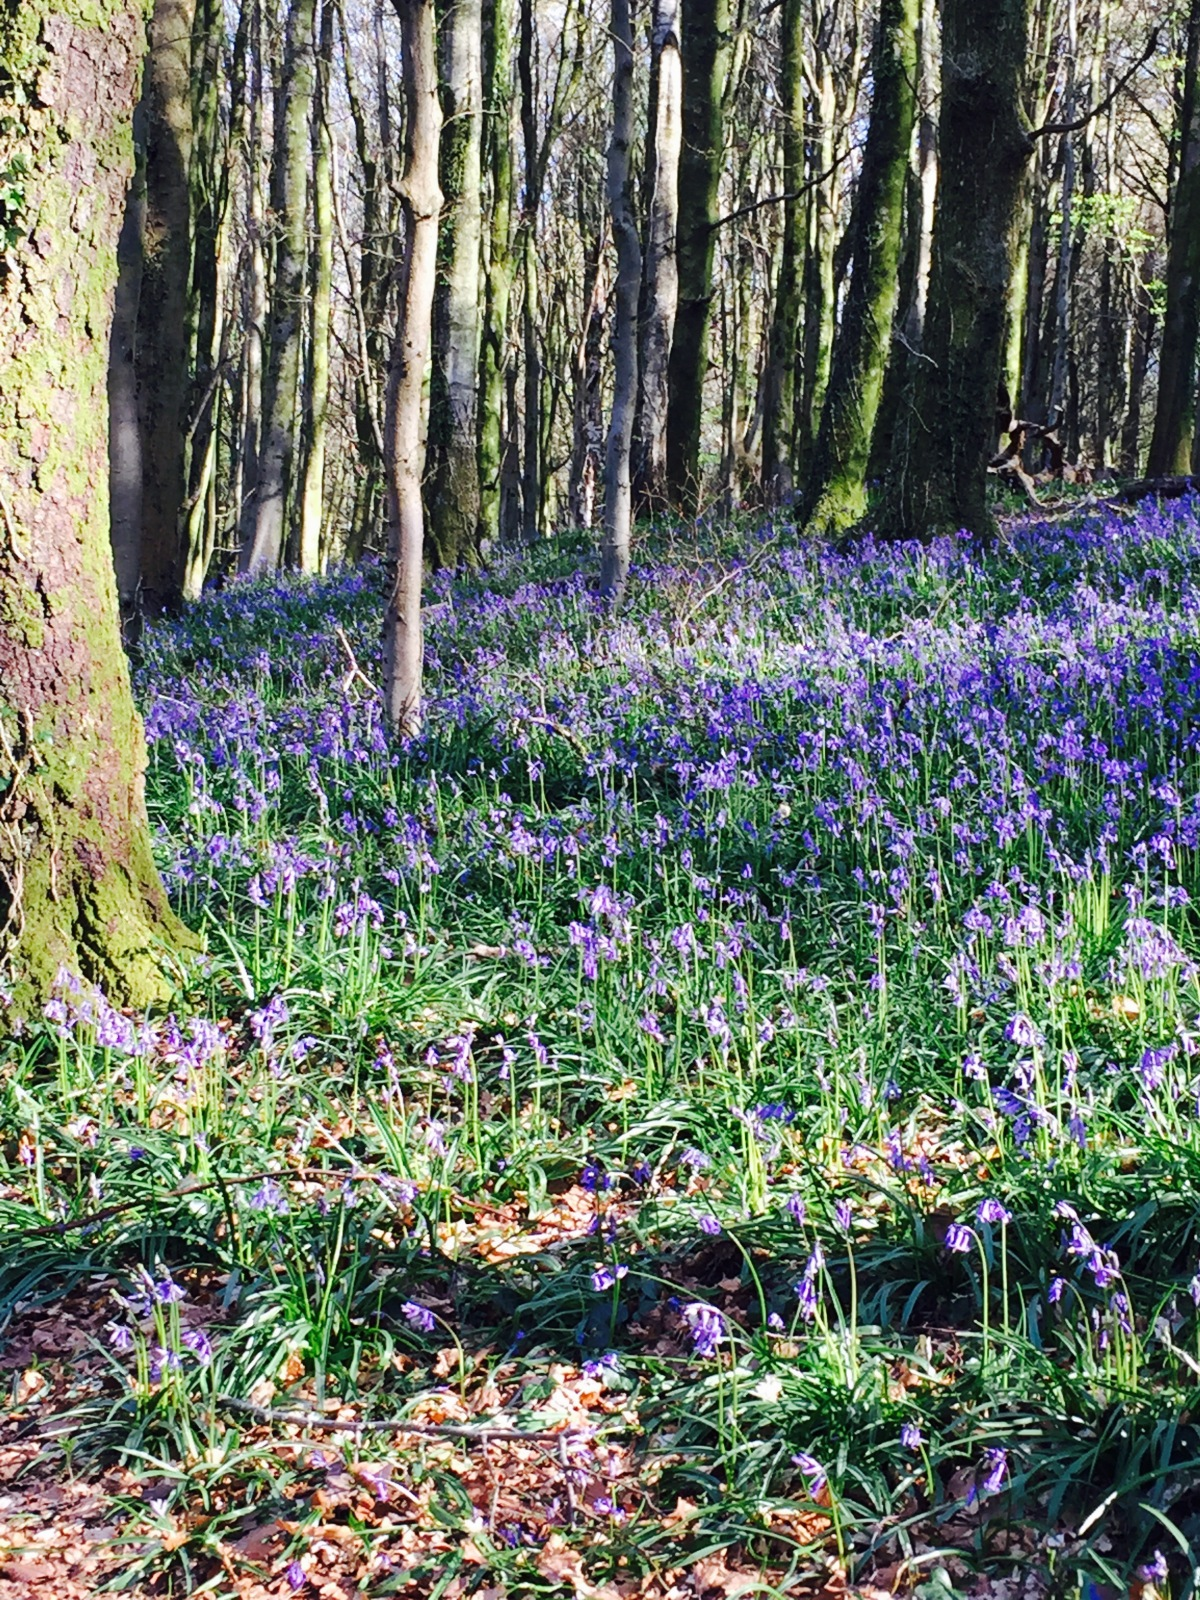 Cardiff's bluebell woods (Wenallt): an early morning walk with W